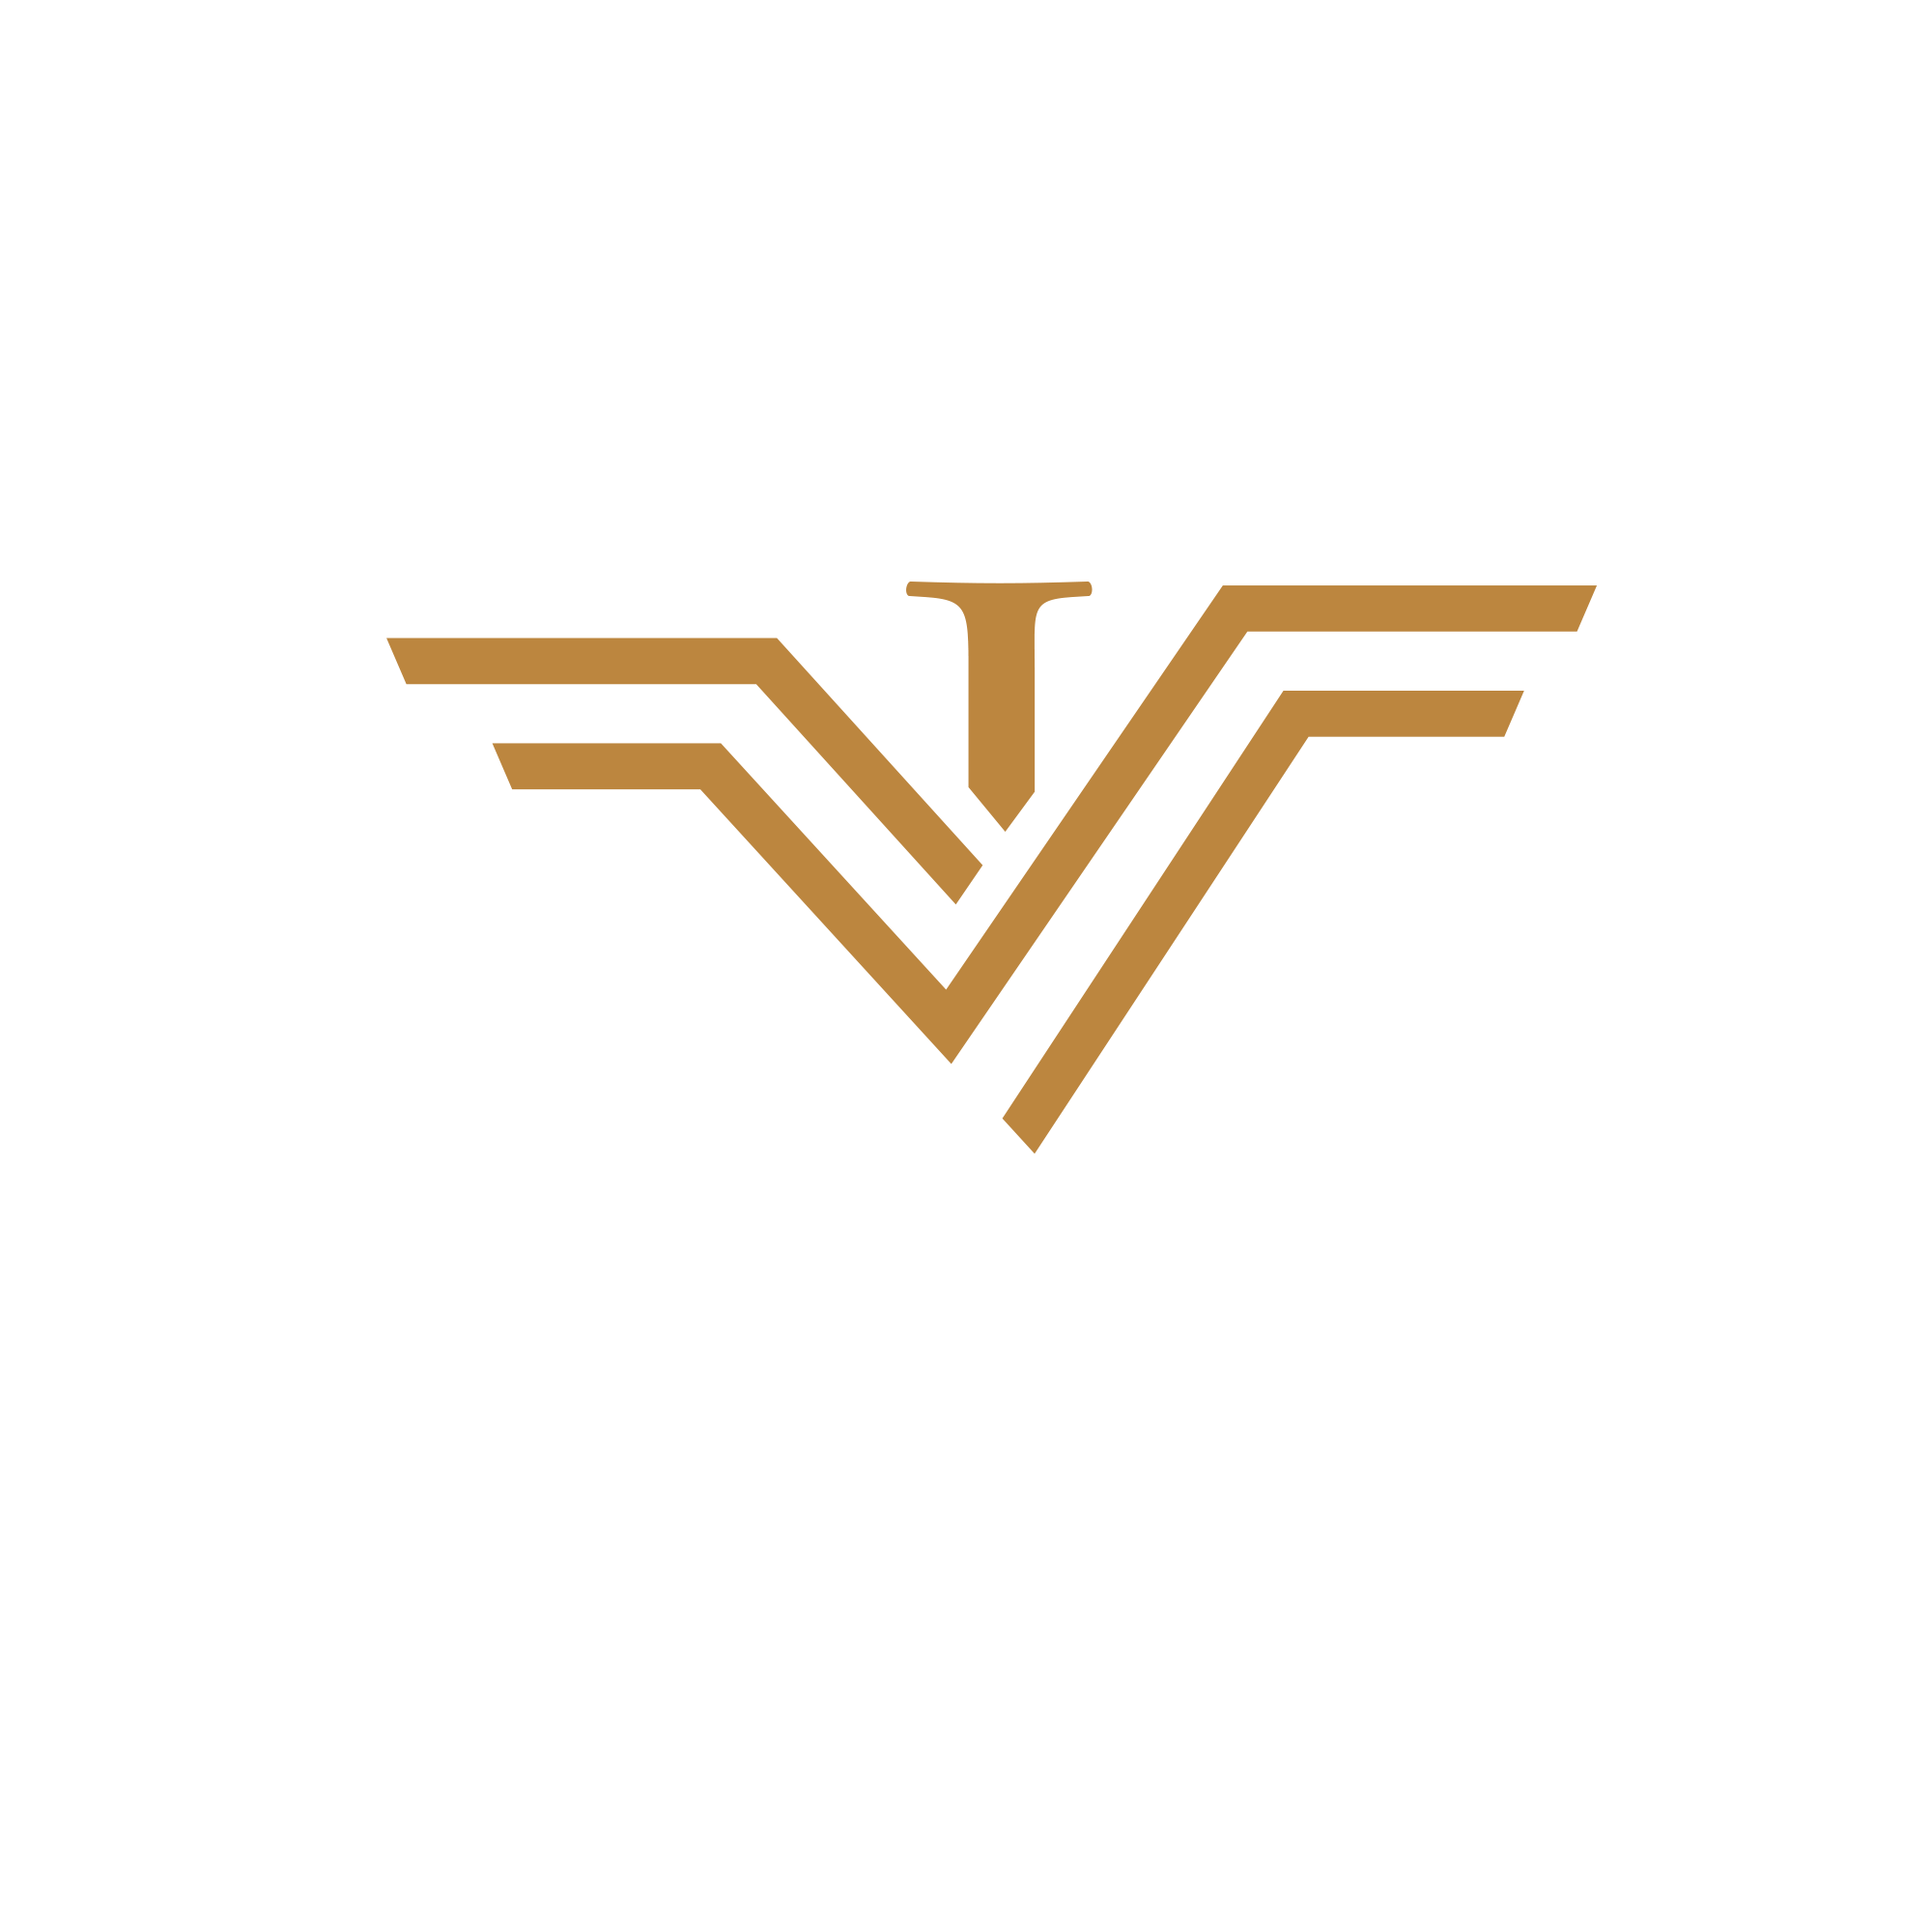 Vision-Immo: Aerial photographs and videos of real estate objects